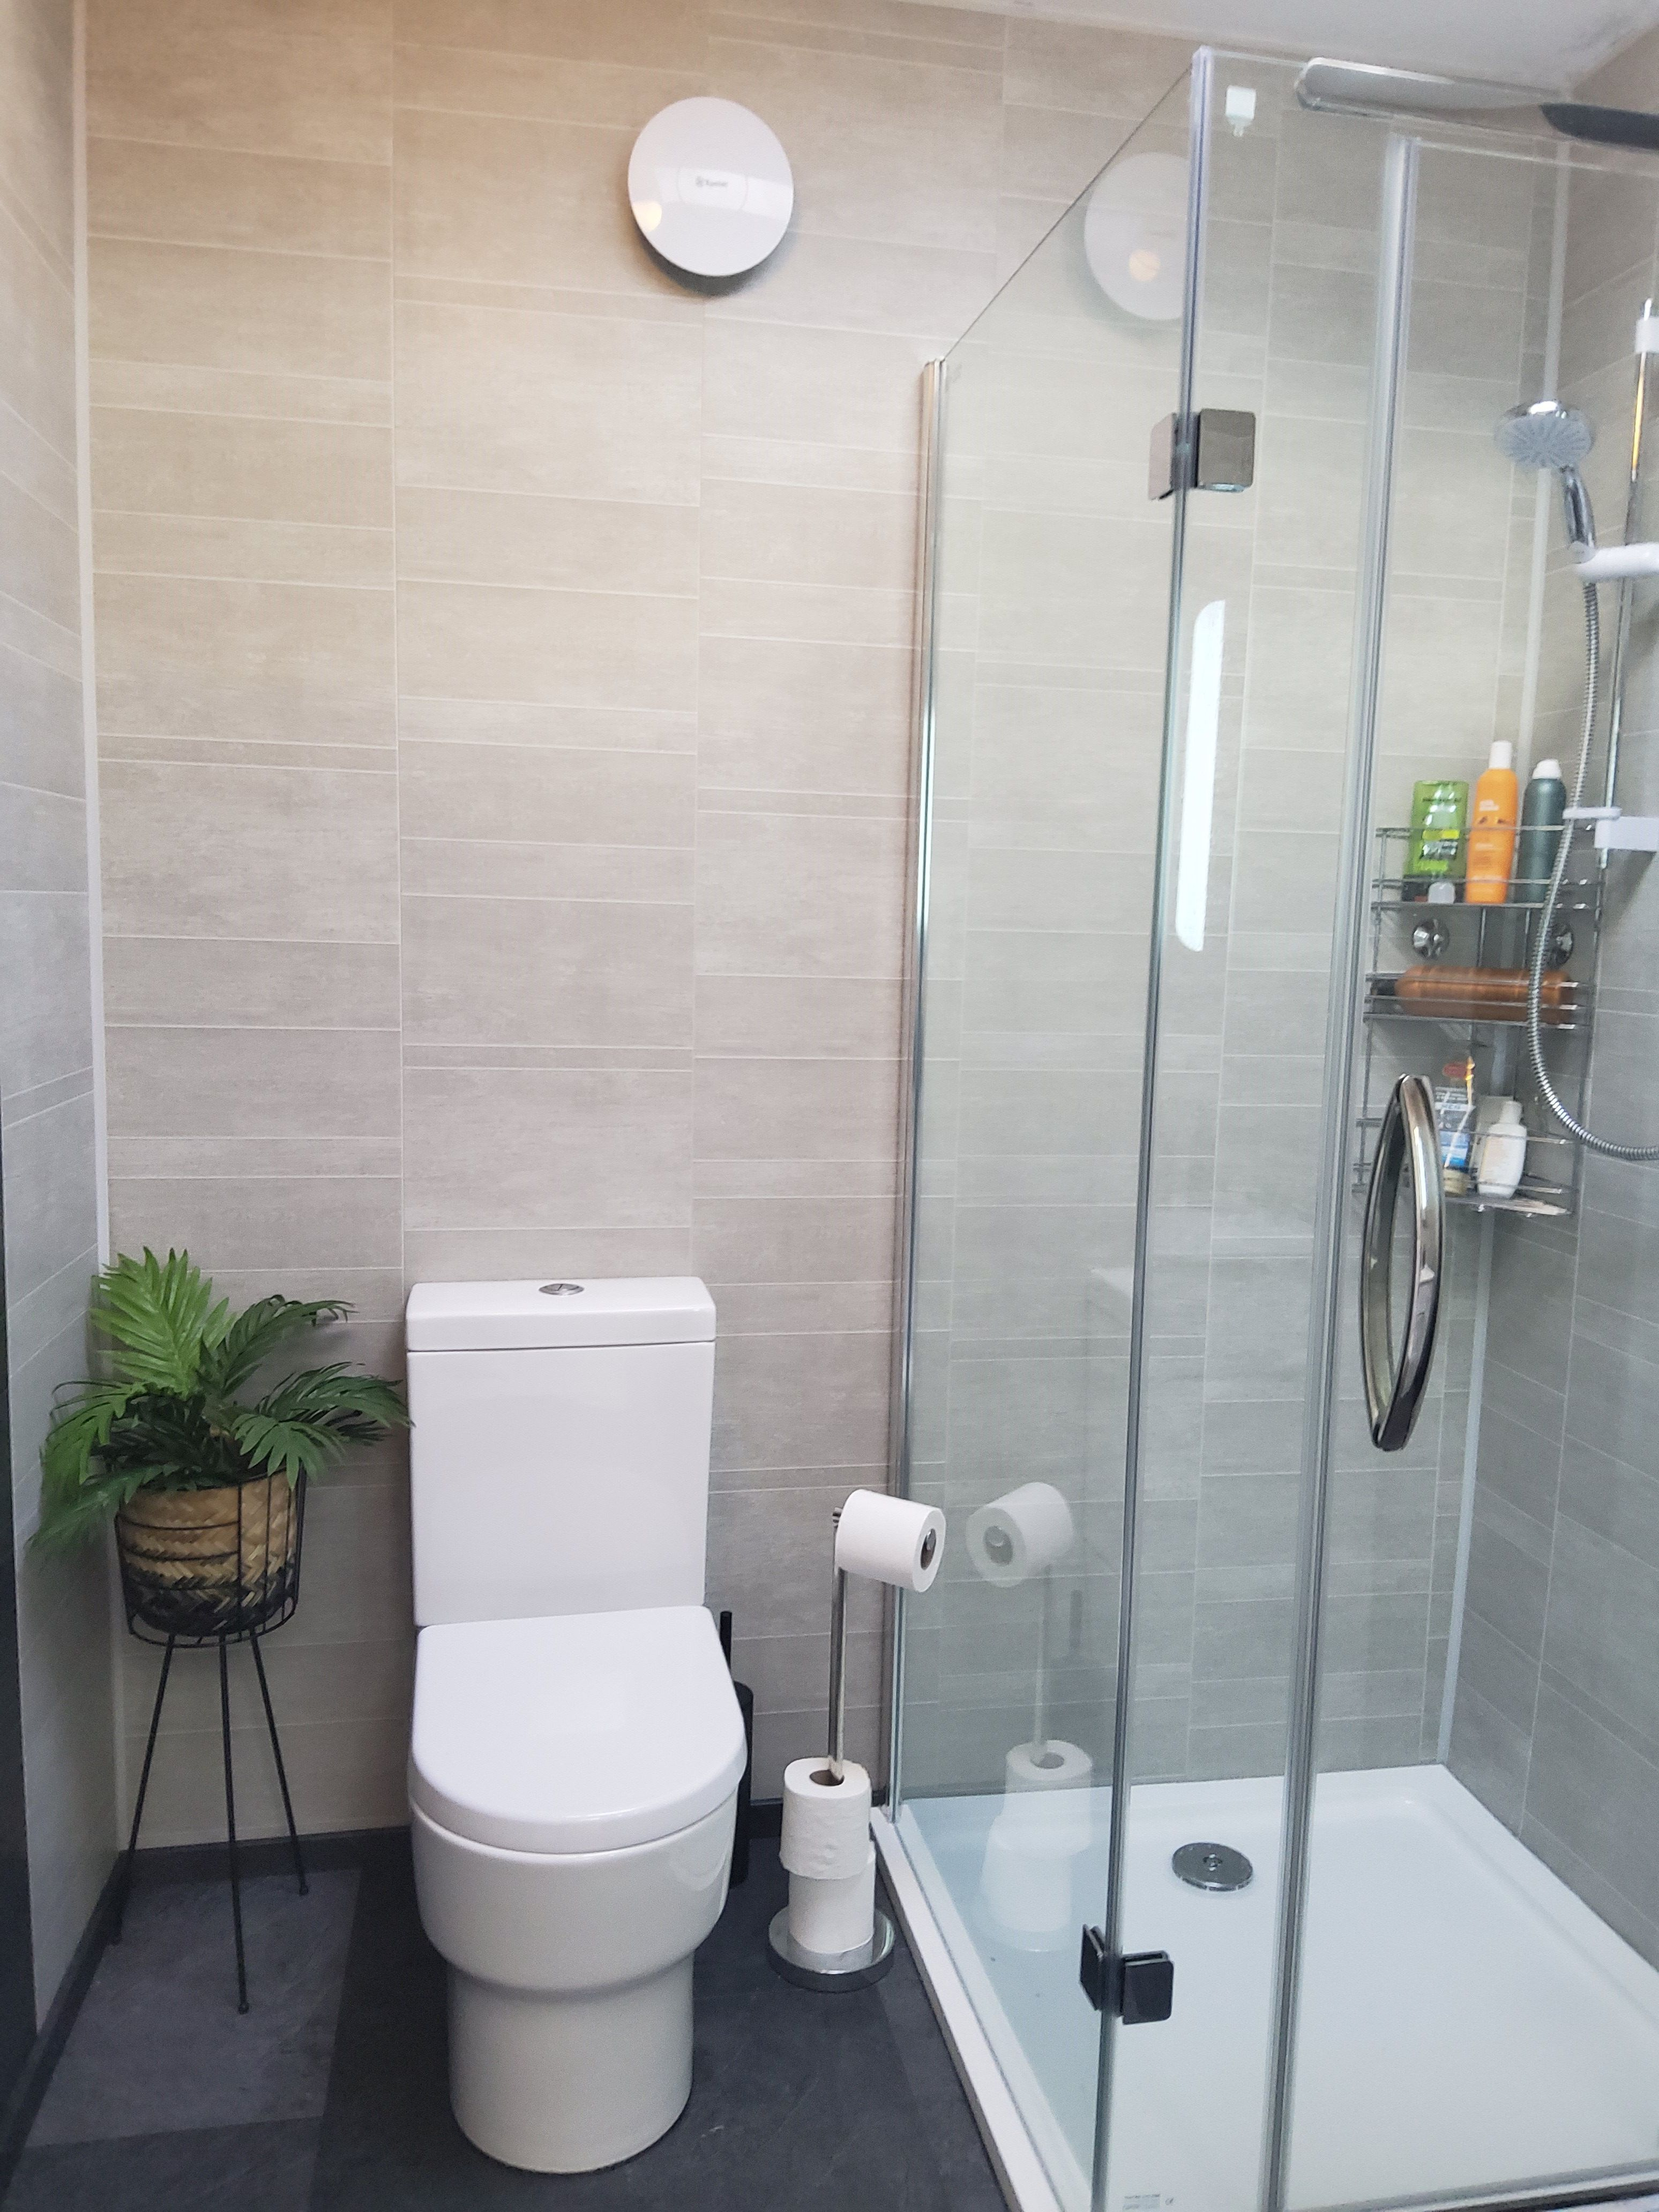 Customer Bathroom In 2020 Bathroom Inspiration Bathroom Suites Bathroom